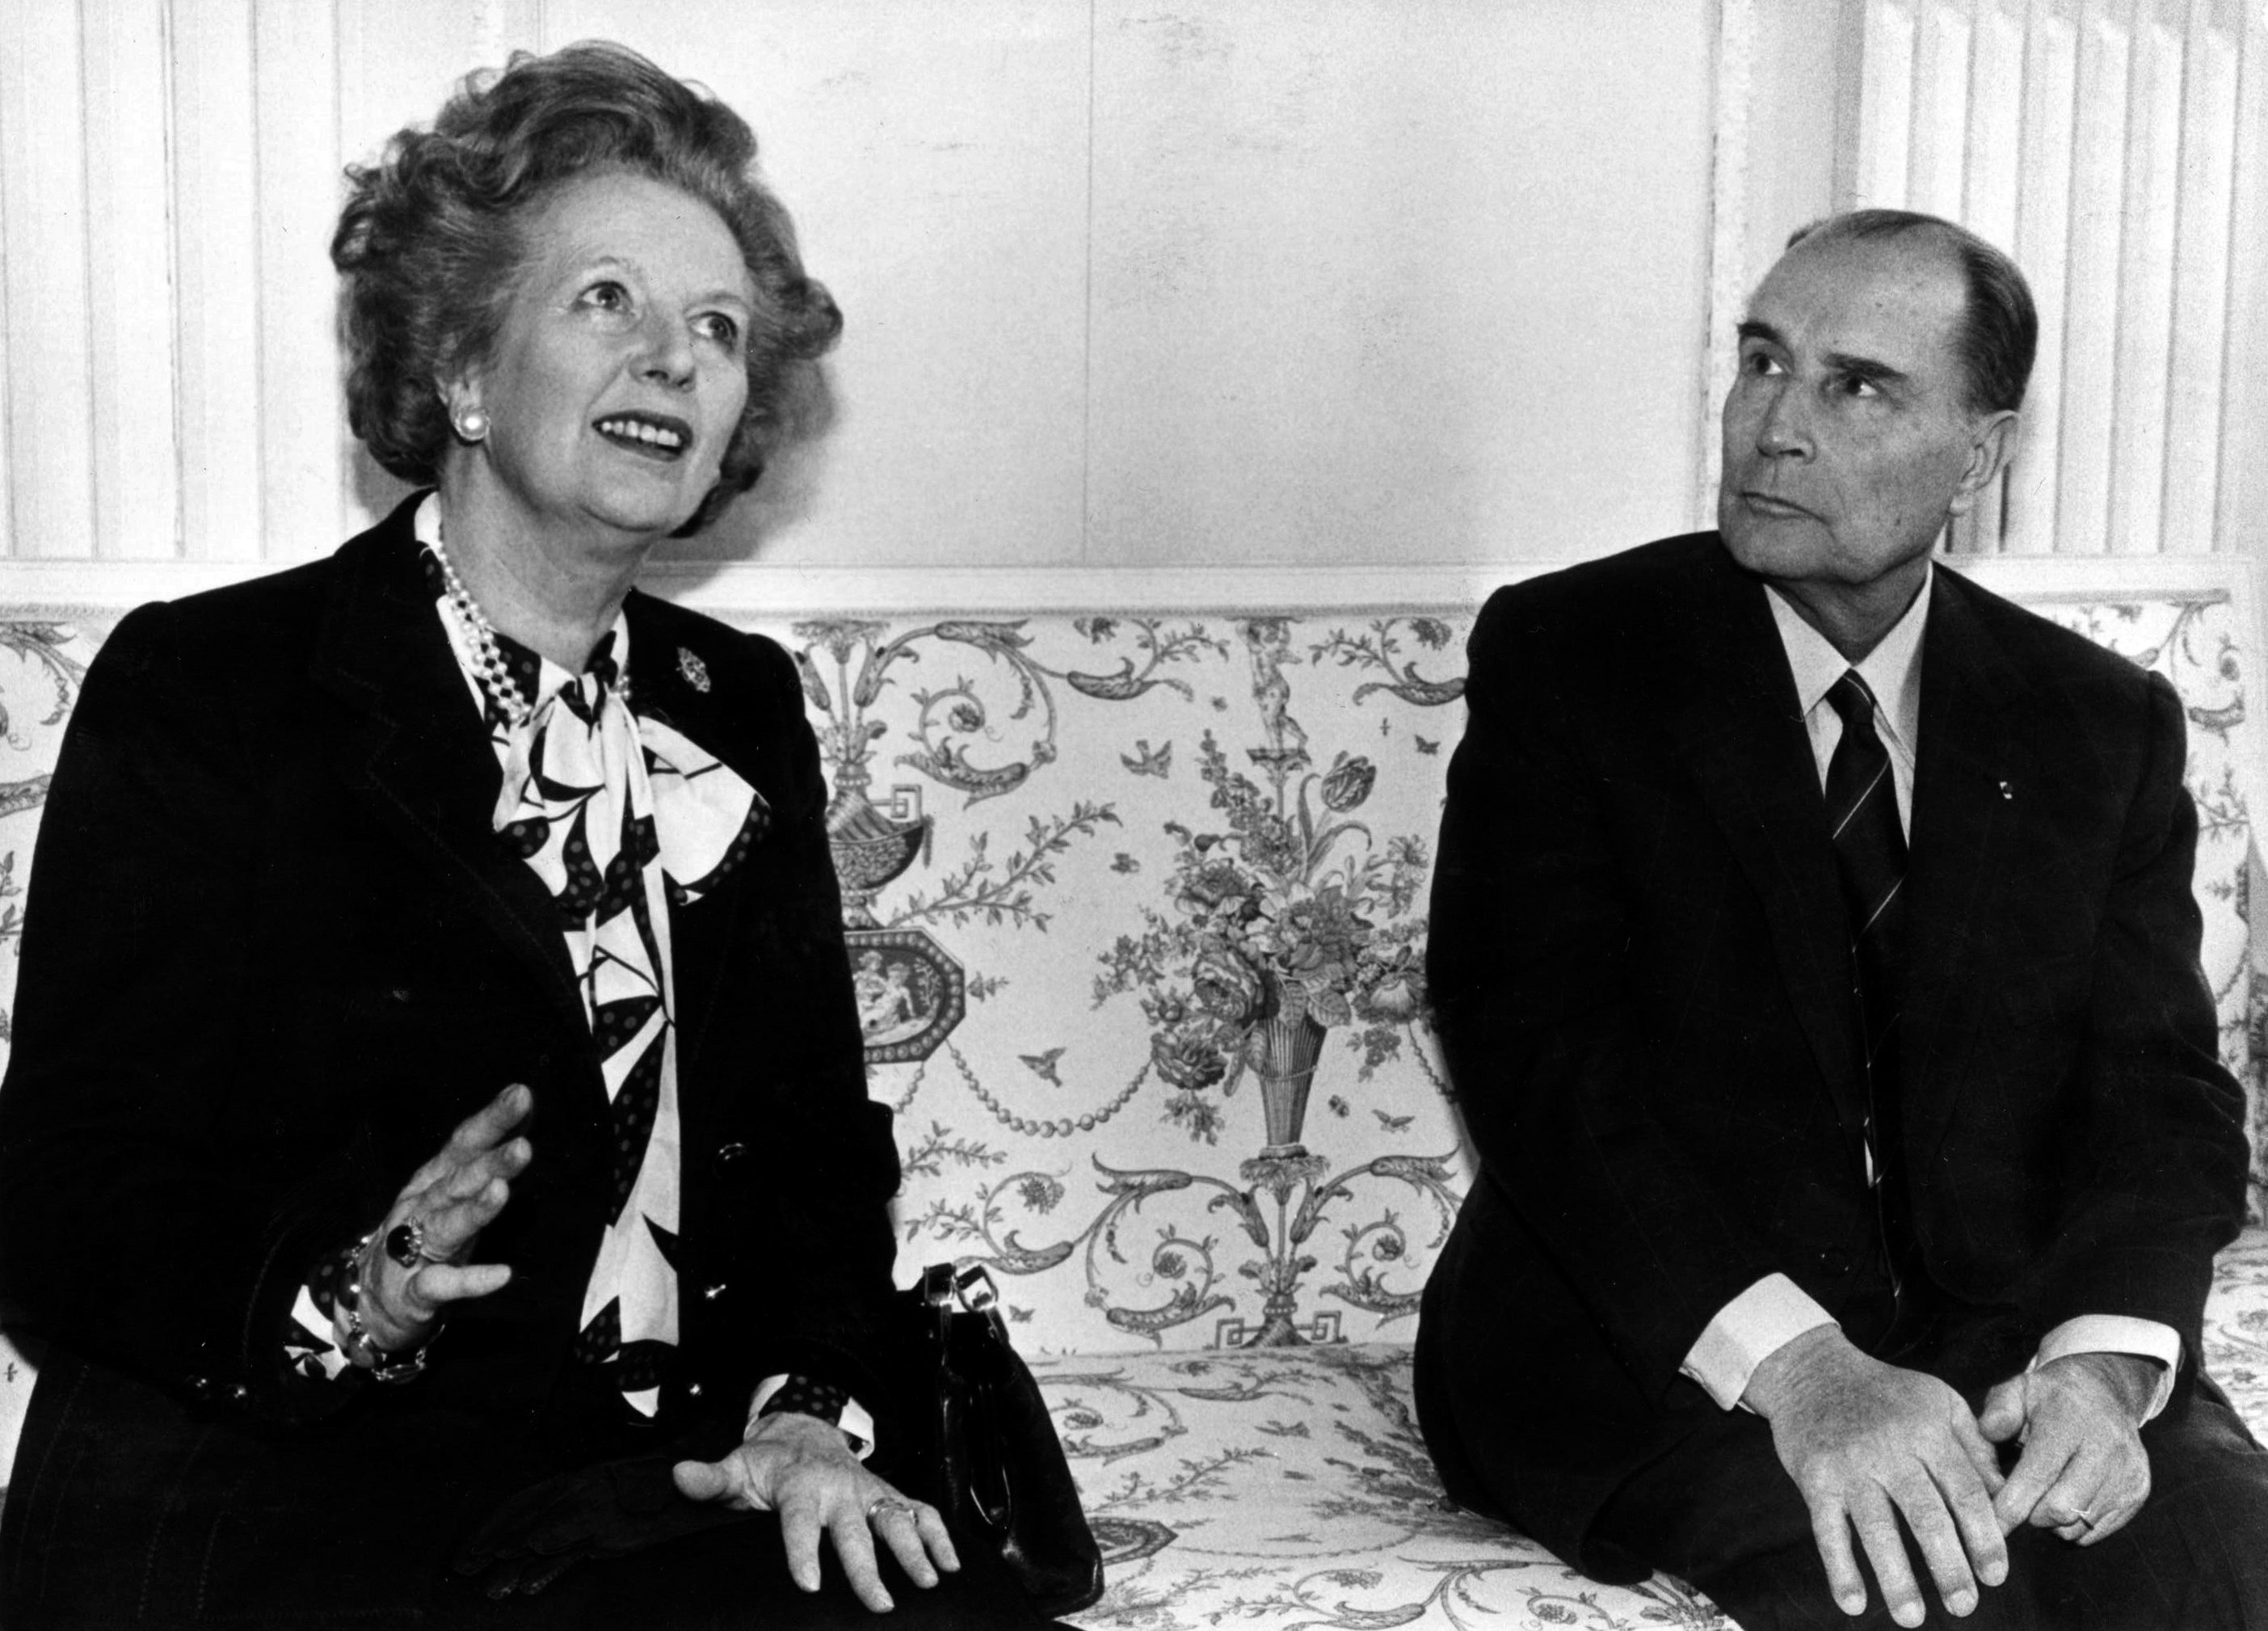 British Prime Minister Margaret Thatcher (L) and French President Francois Mitterrand talk to the media before a meeting about nuclear arms control at the Chateau de Benouville in Normandy, western France in this March 23, 1987 file photo.